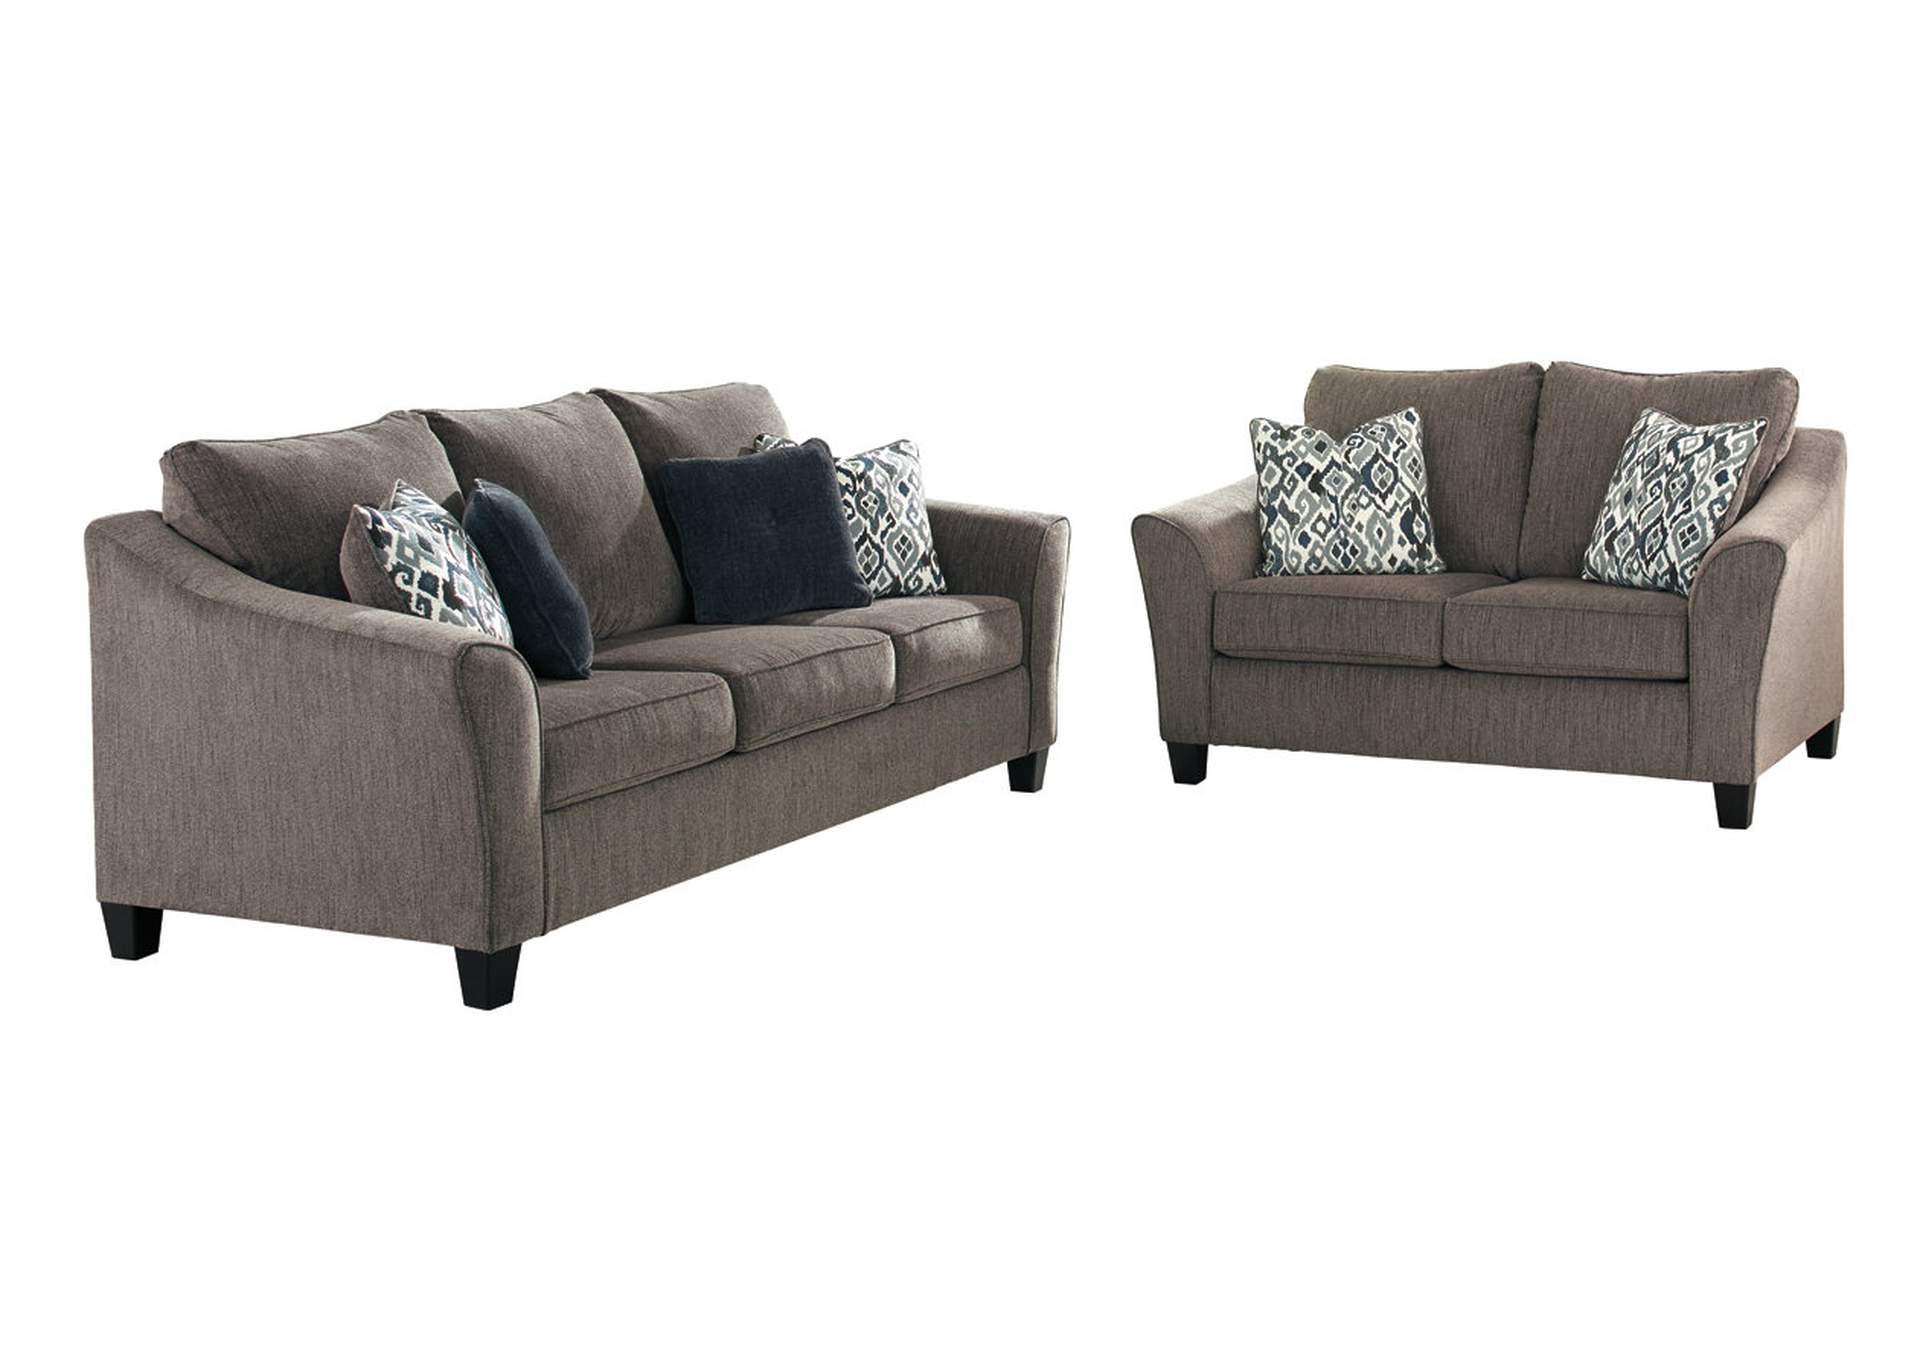 Nemoli Slate Queen Sofa Sleeper,Signature Design By Ashley